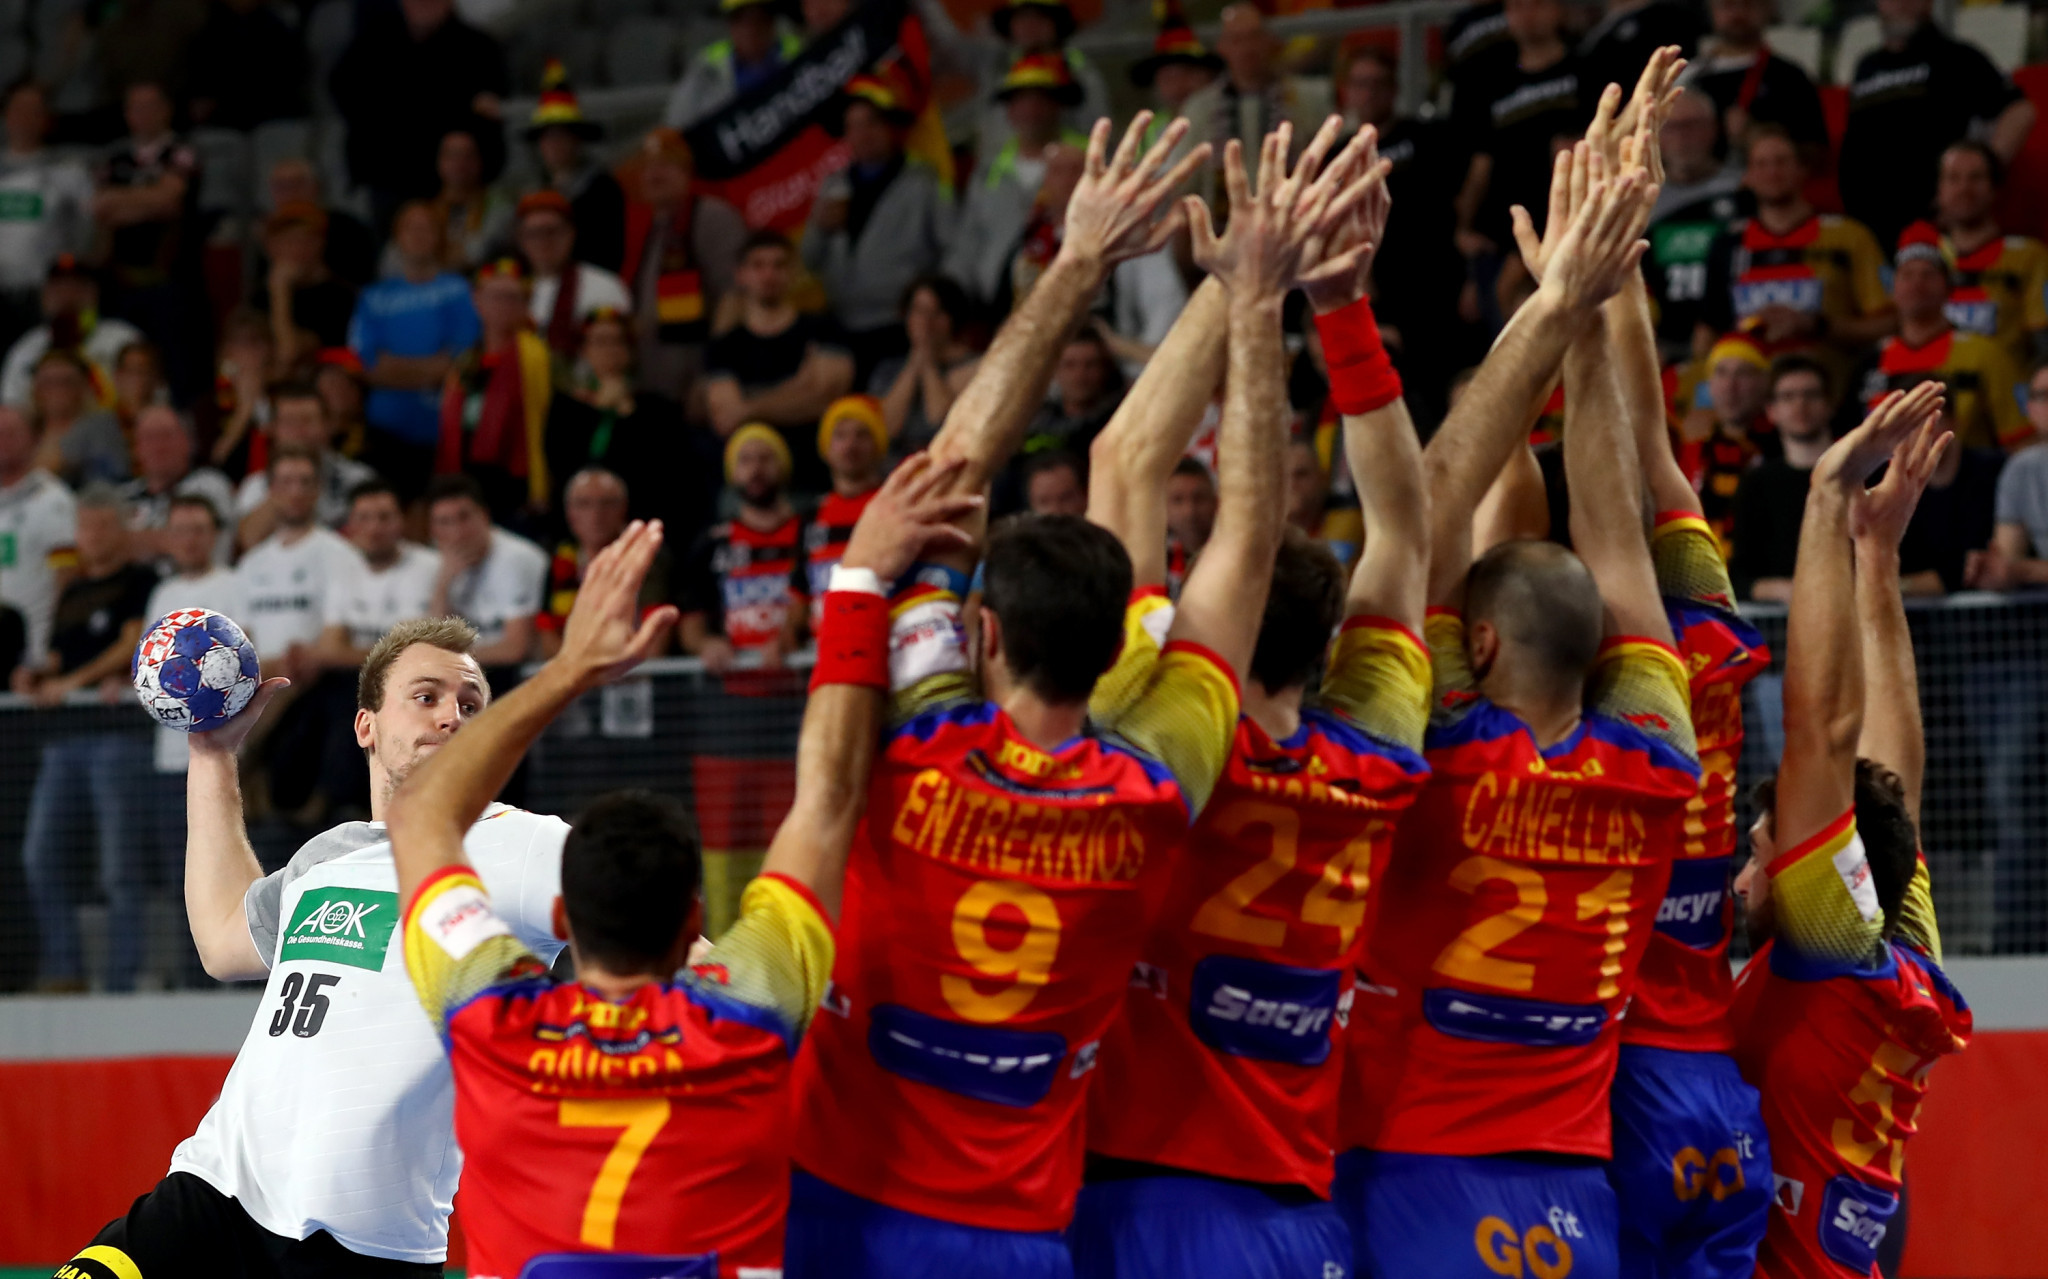 Spain beat Germany to semi-final spot at European Men's Handball Championship